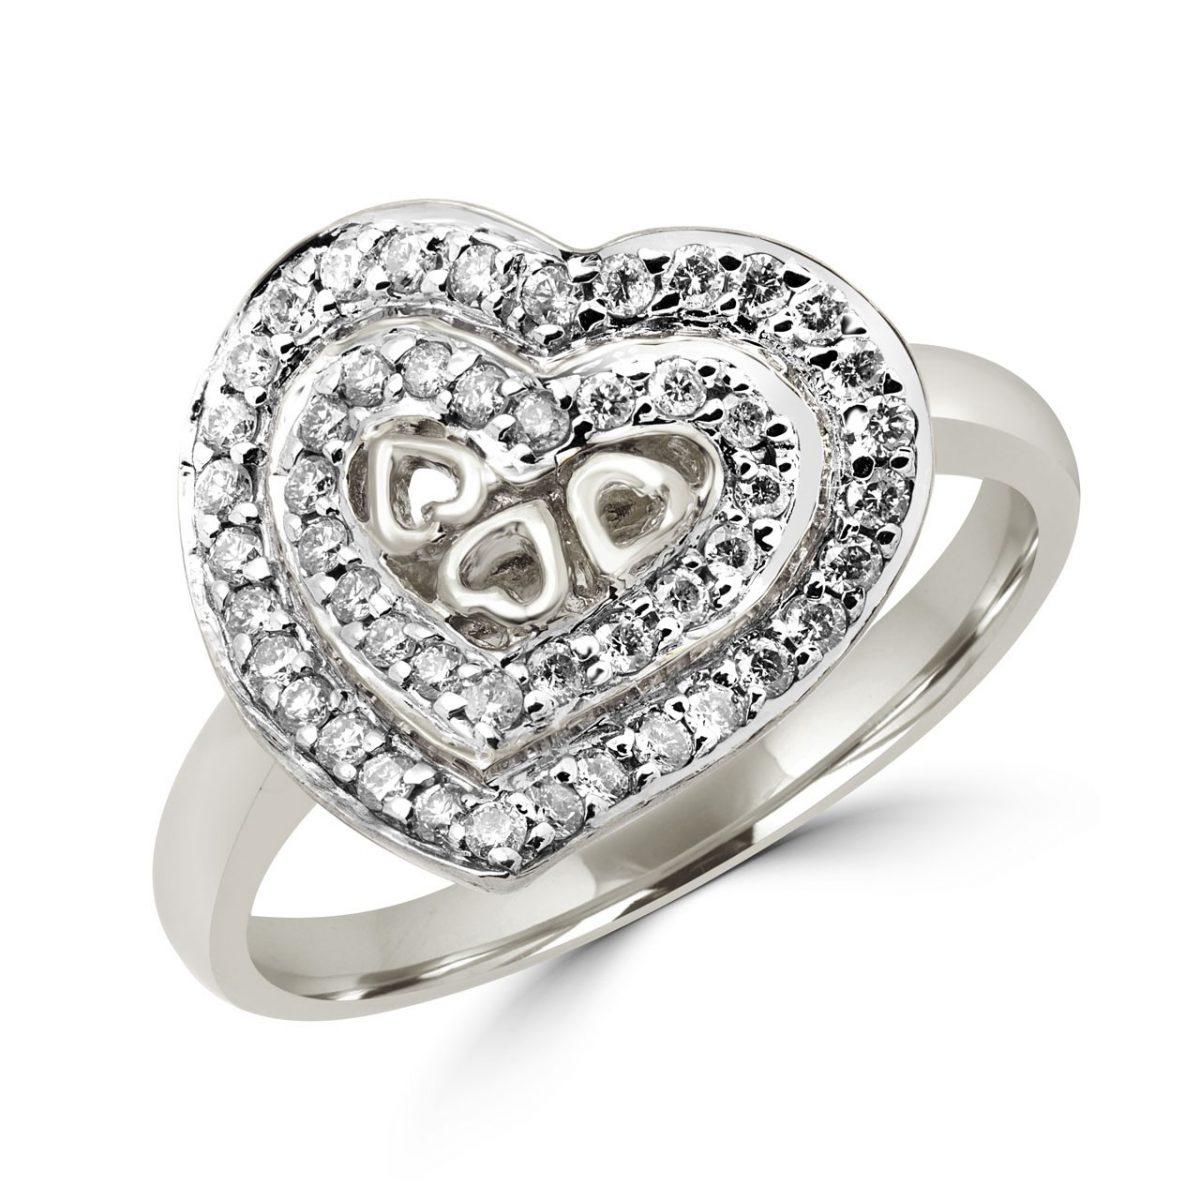 Pave heart cocktail ring 0.33 (ctw) in 10k white gold